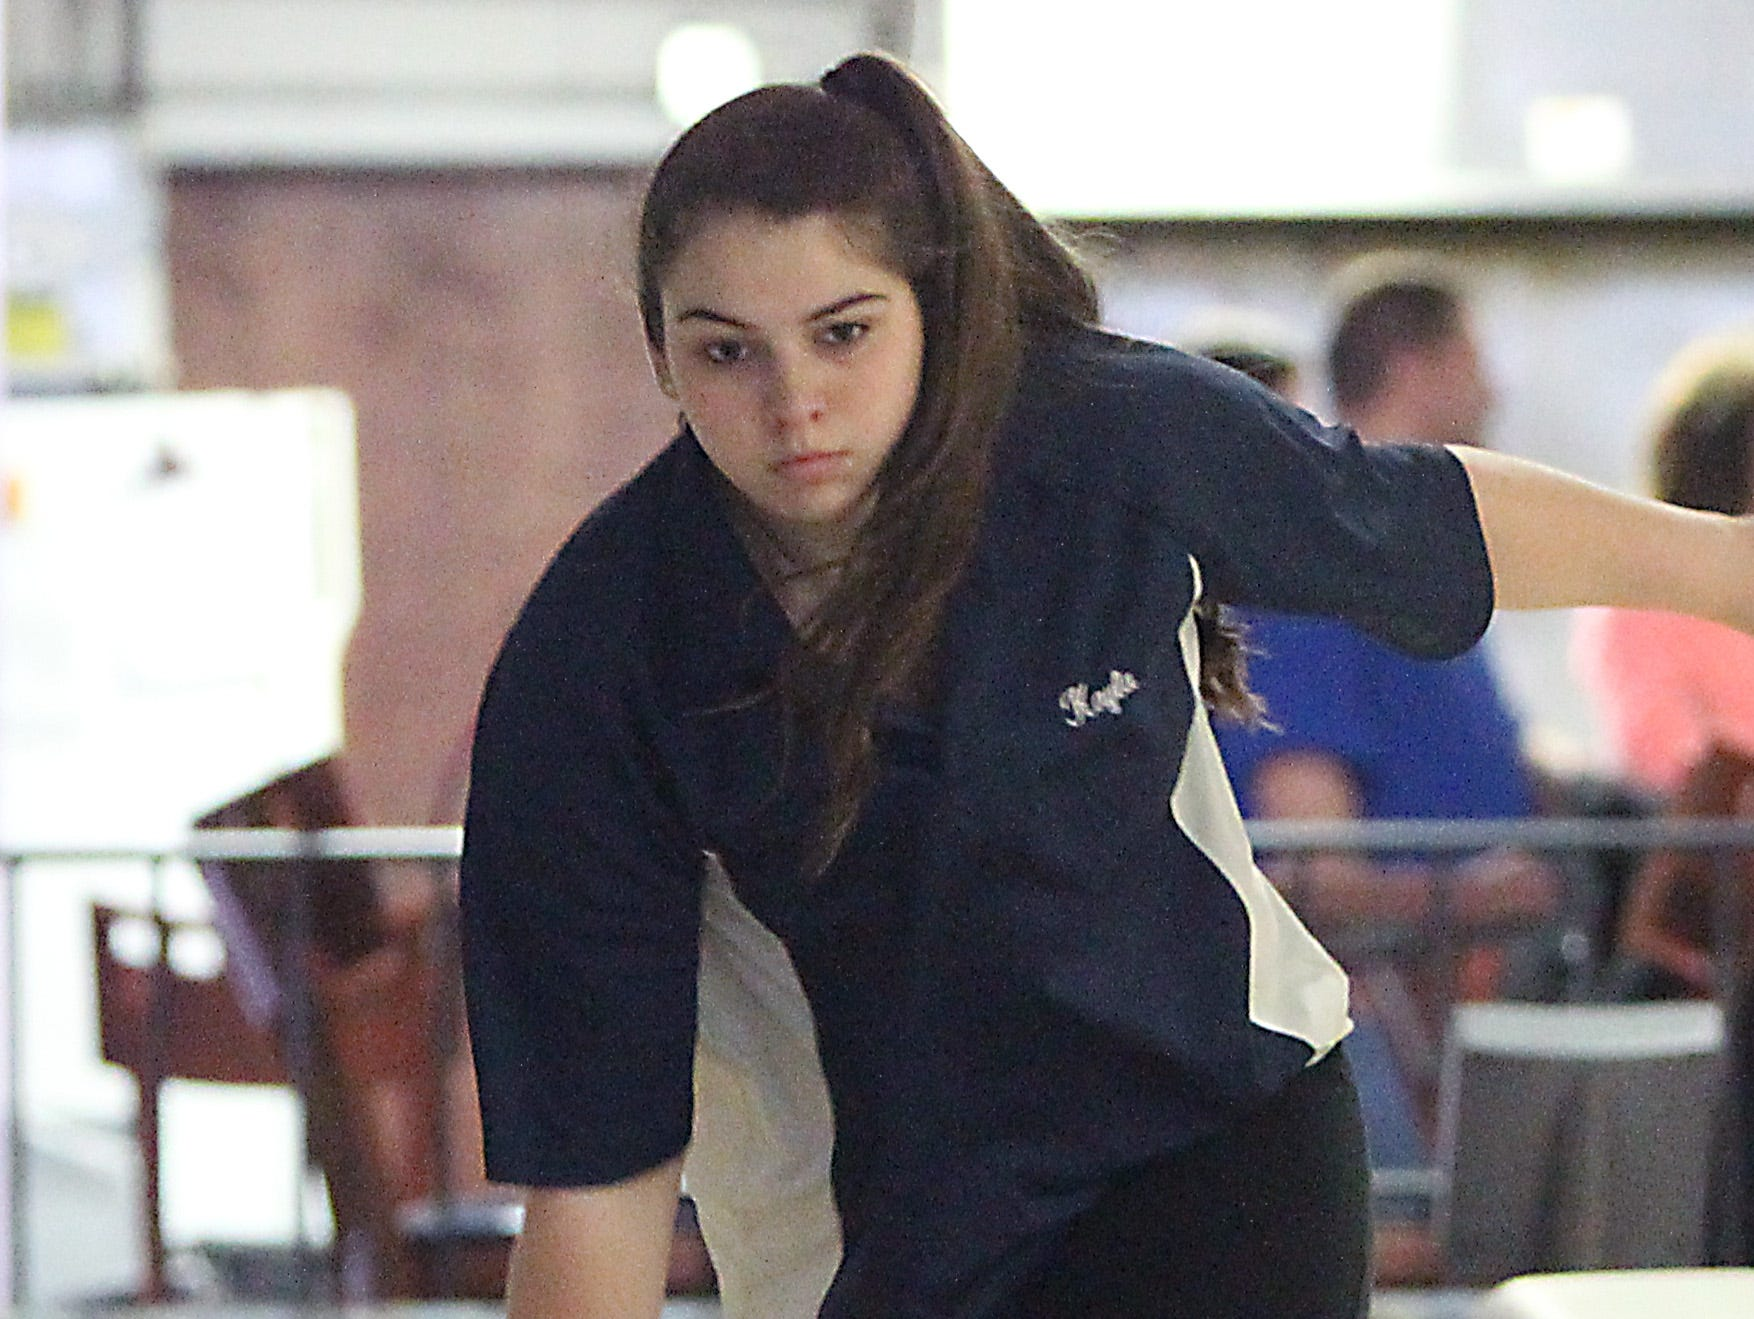 Rockland bowler of the year Kayla Dobrinski of Suffern at New City Bowl March 25, 2016.